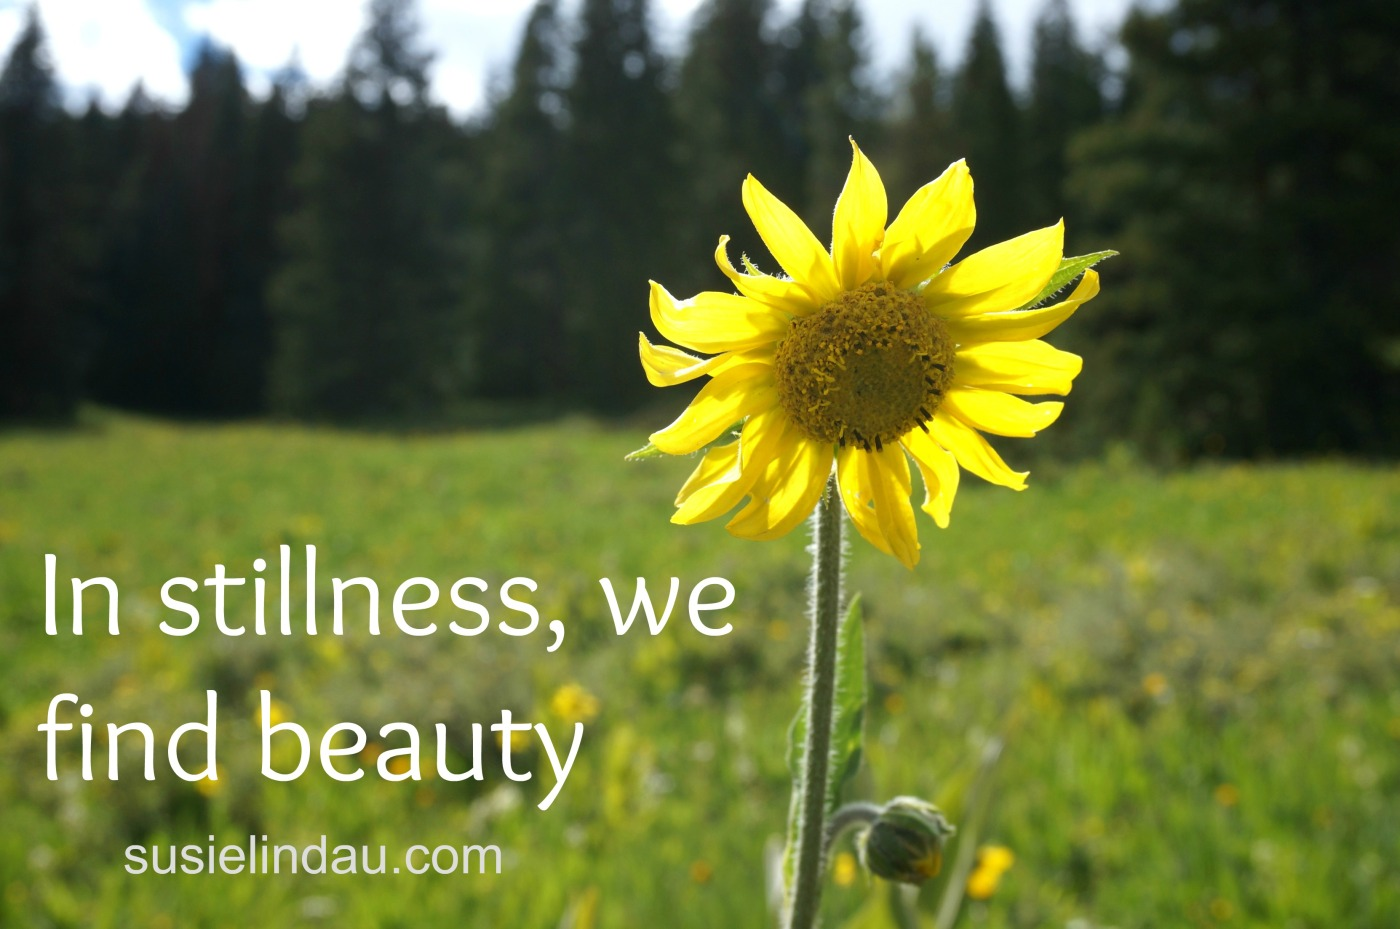 In stillness we find beauty poster with yellow flower